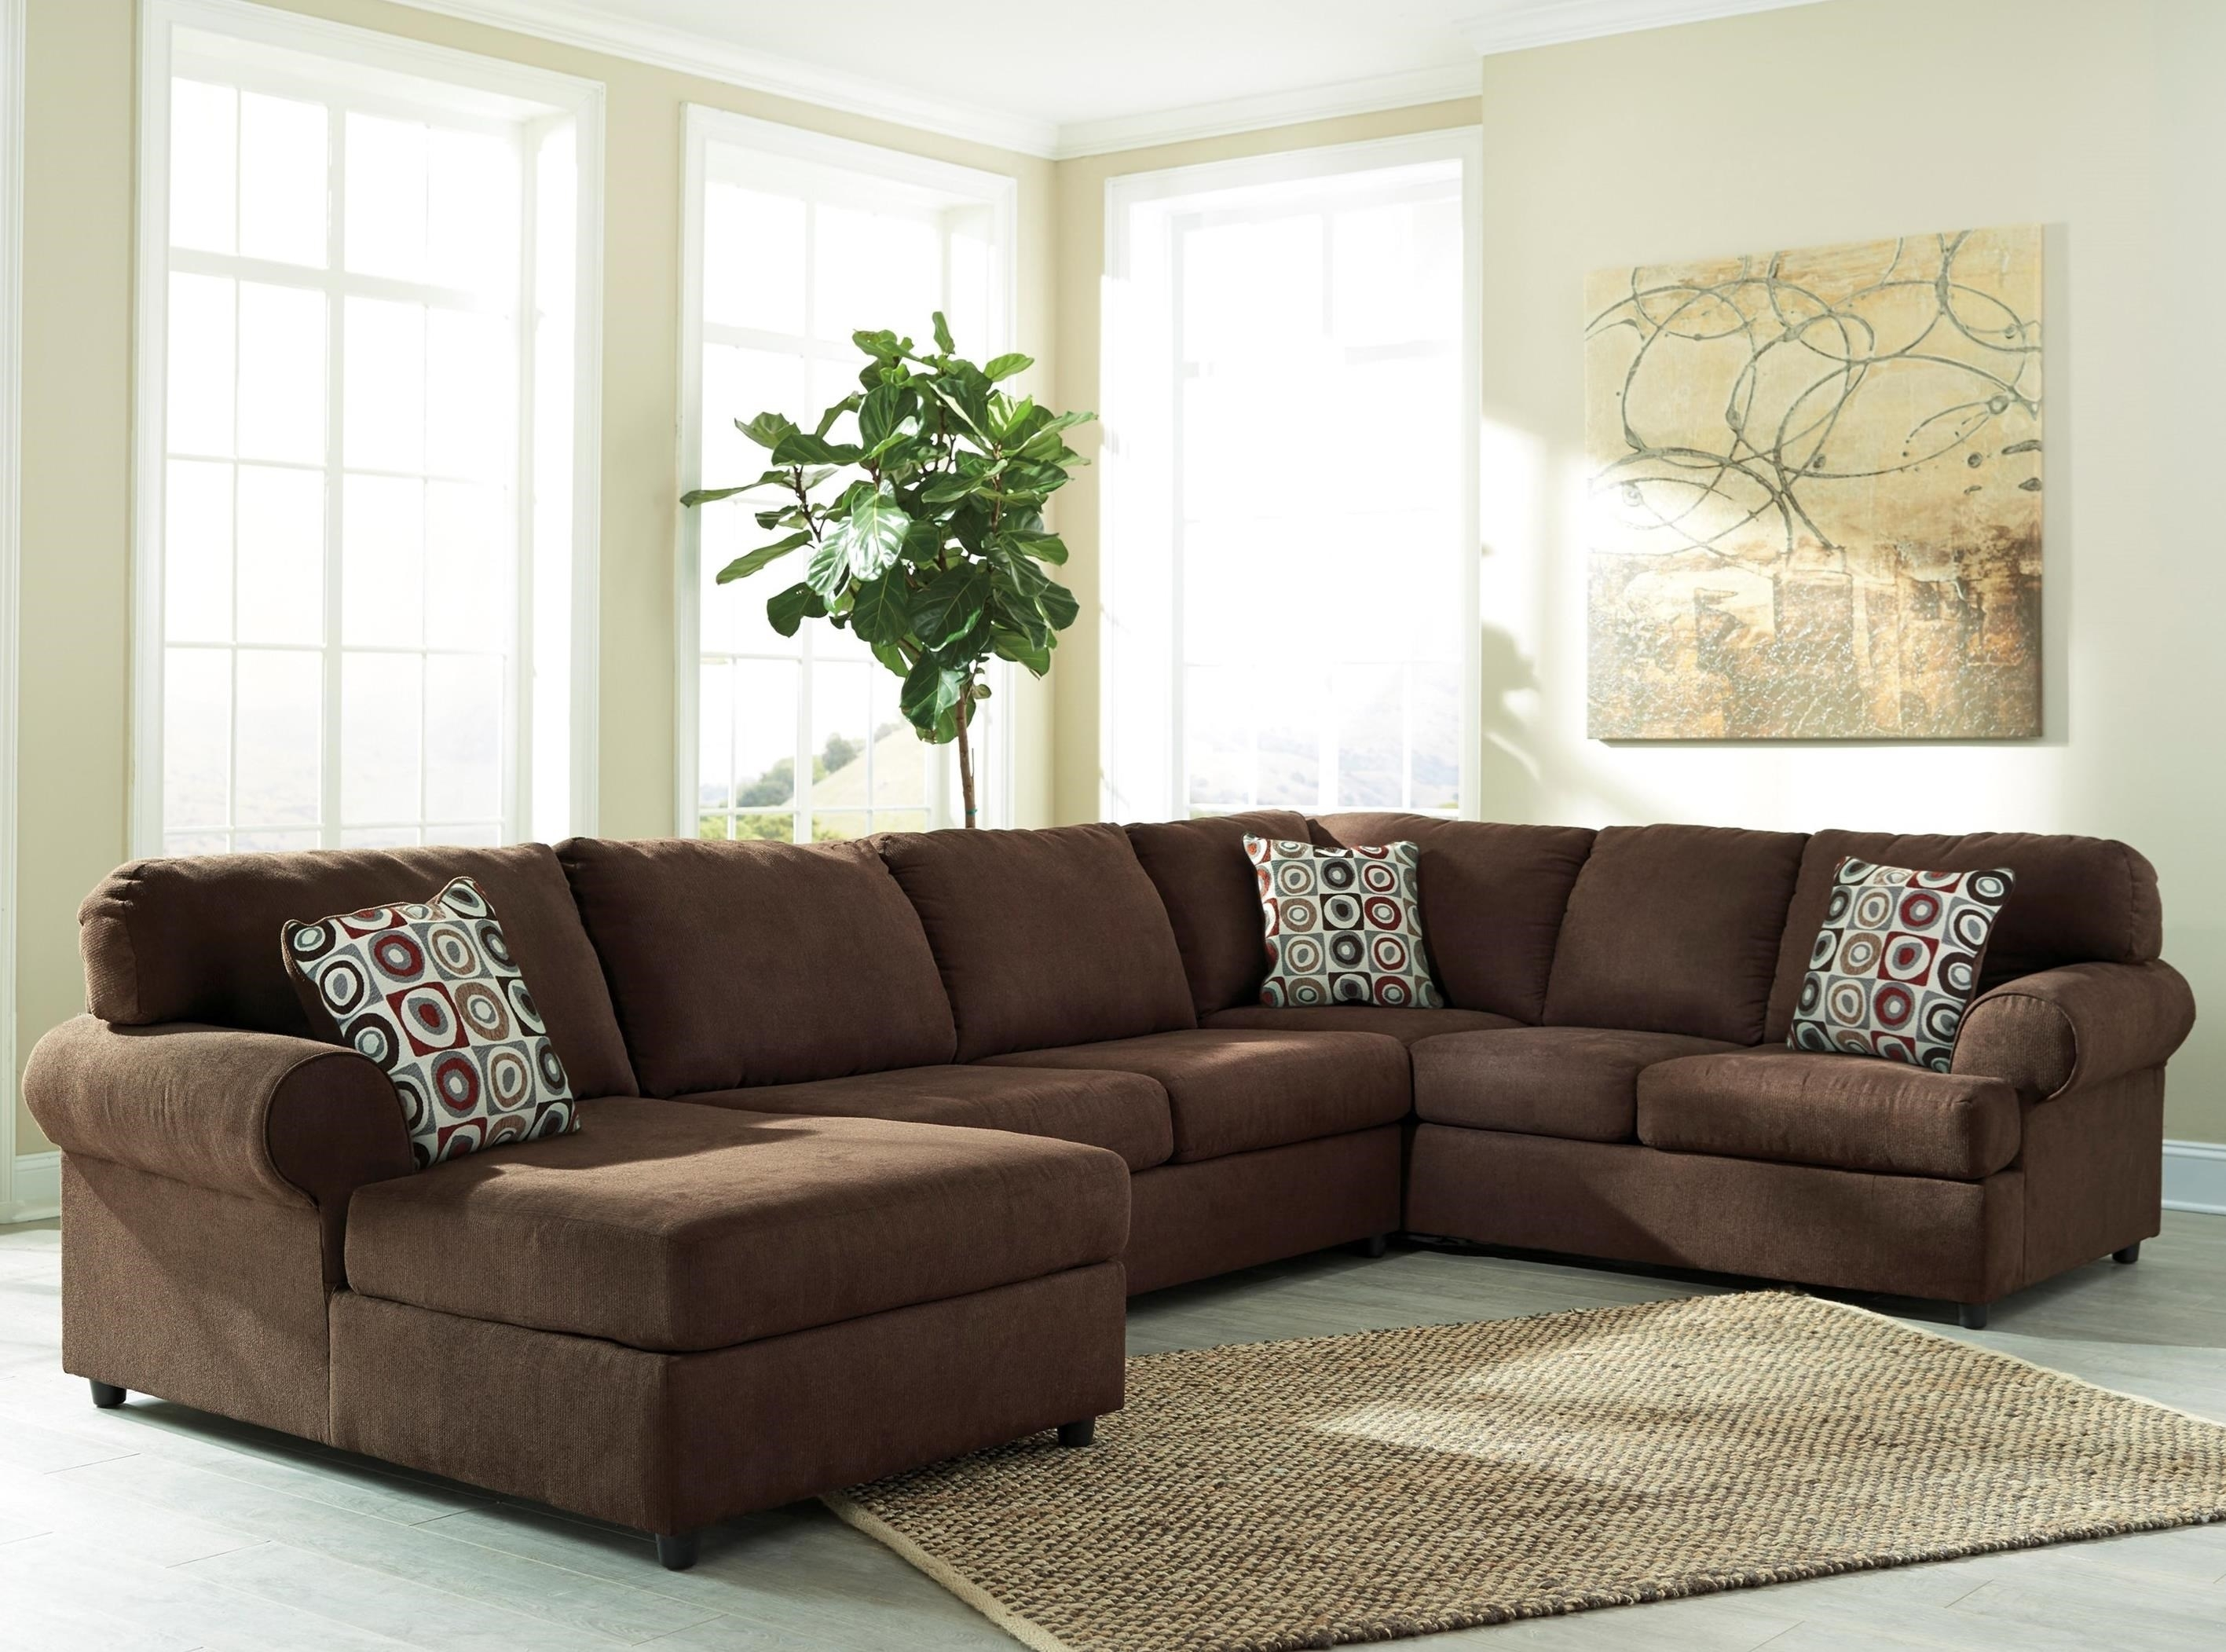 Furniture: Gorgeous King Hickory Sectional For Living Room Furniture With Regard To Hickory Nc Sectional Sofas (View 2 of 10)